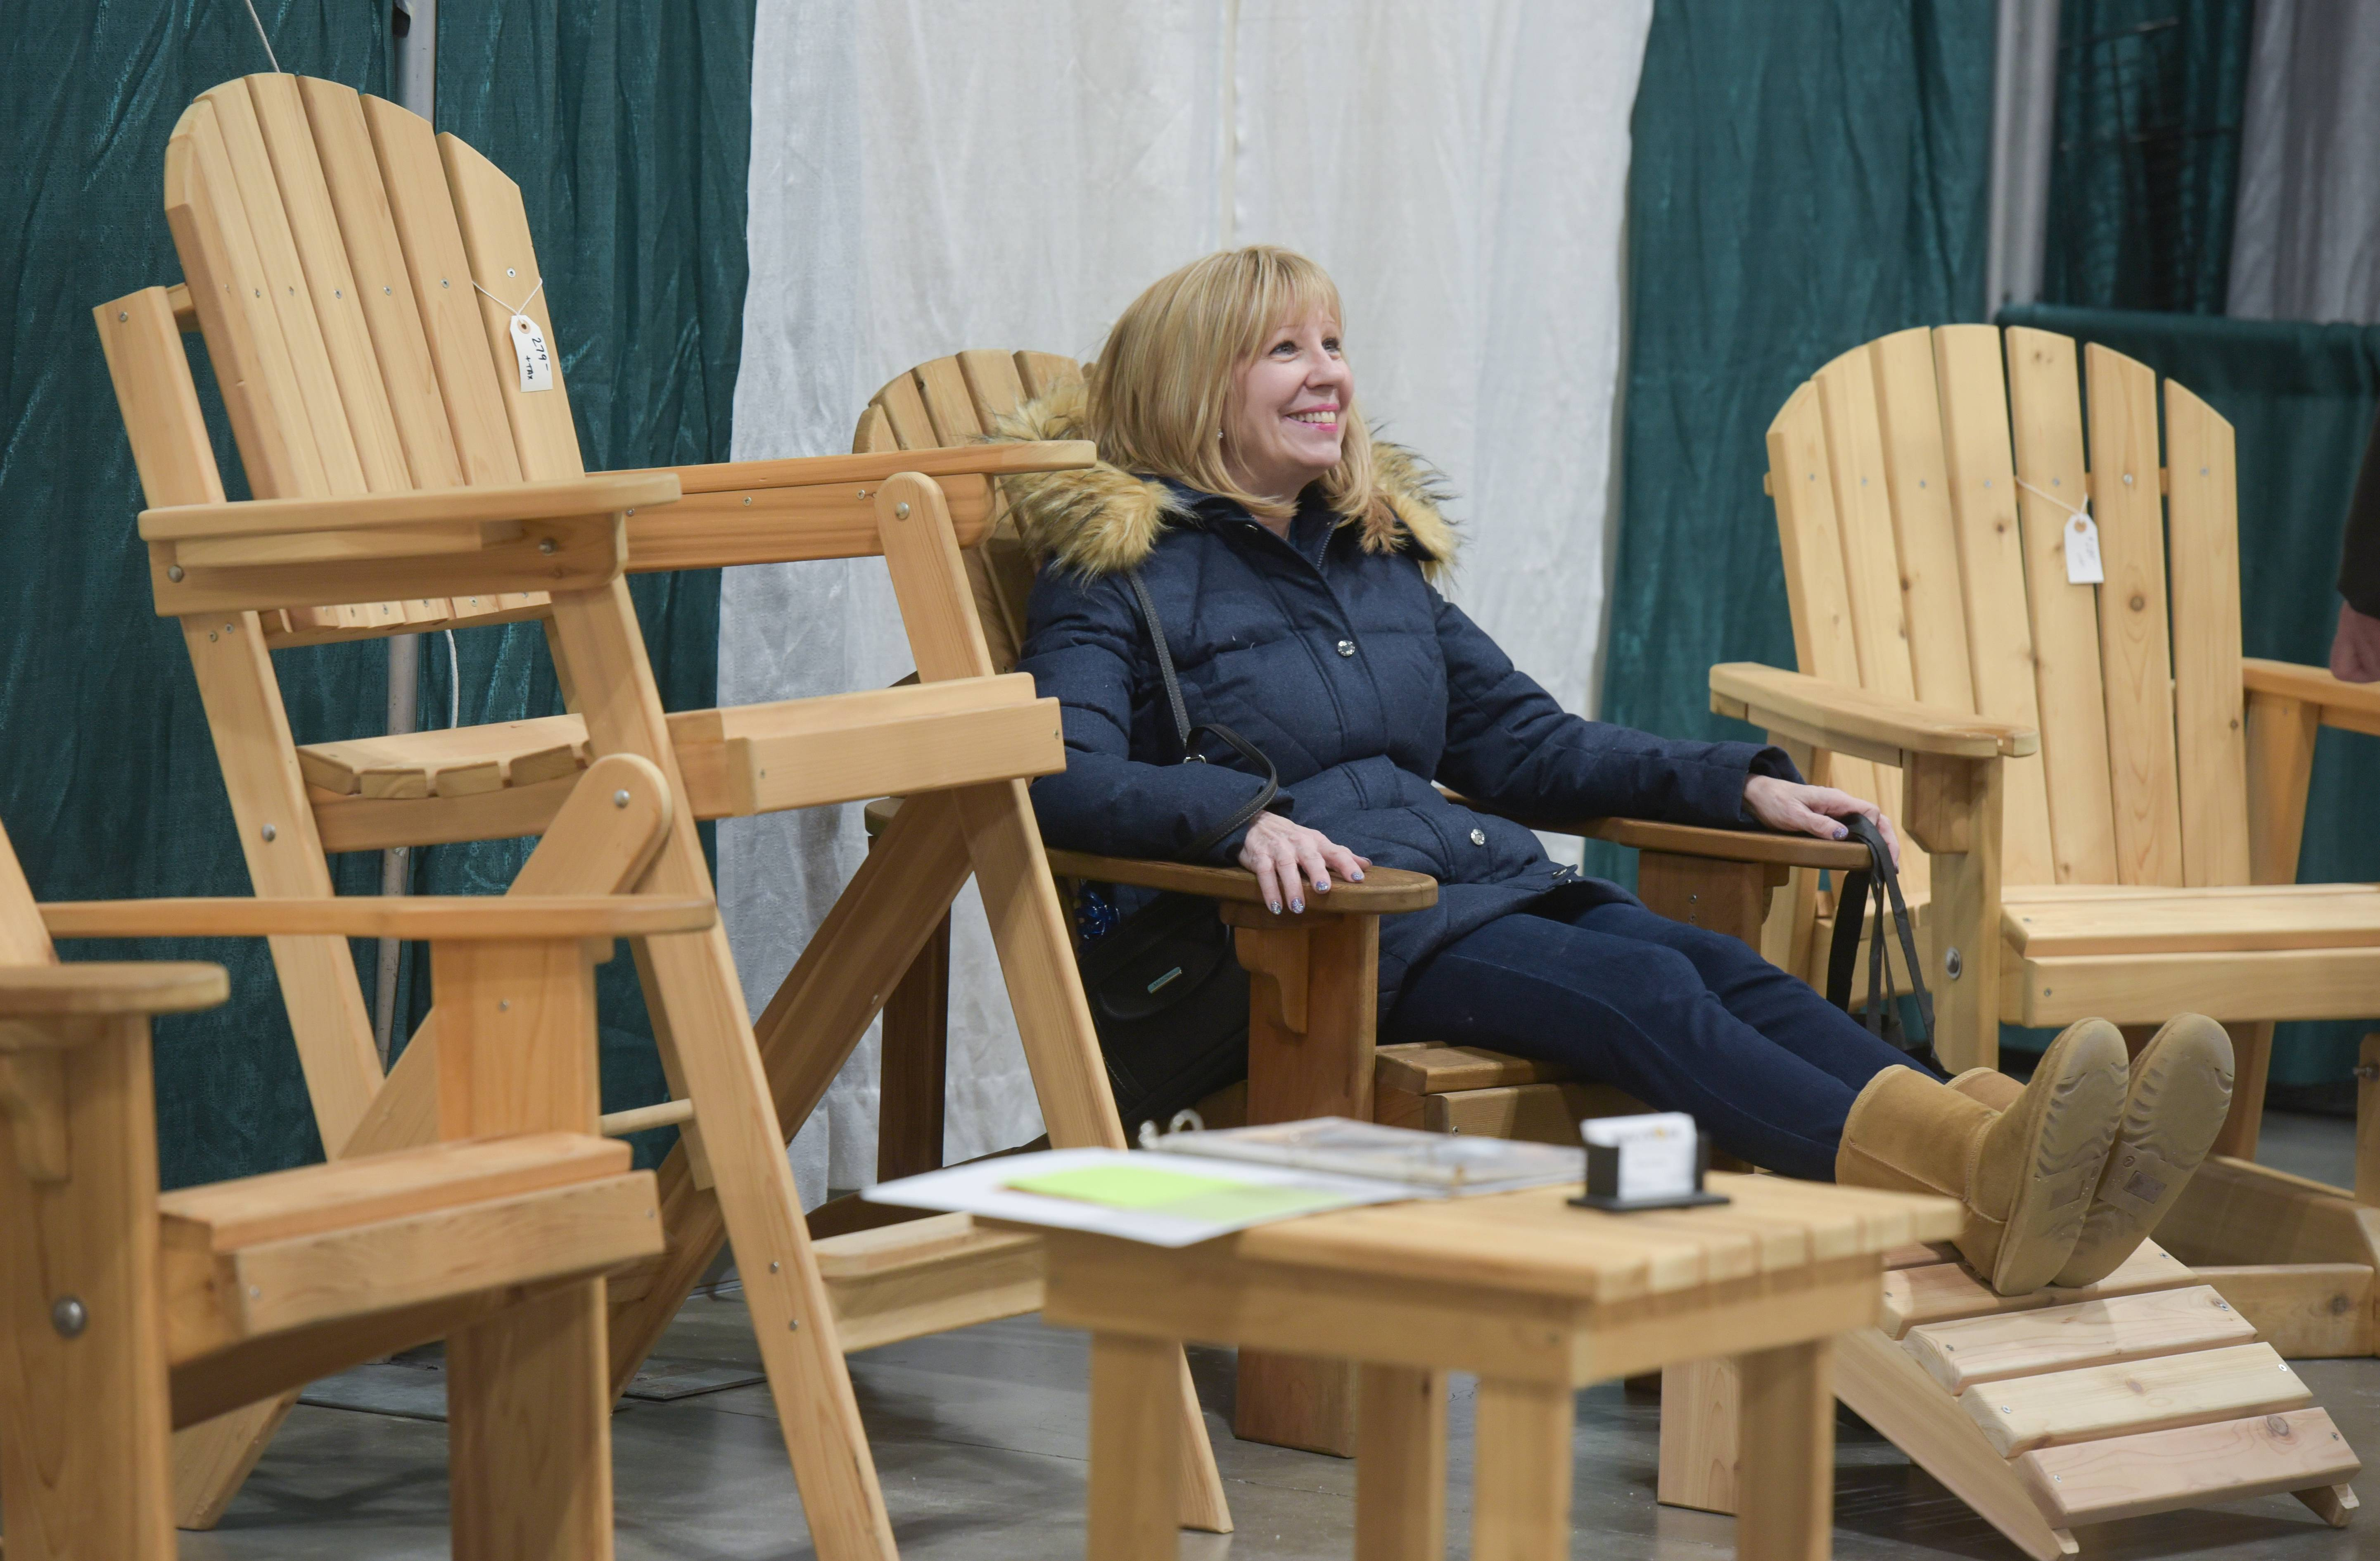 Cindy Mak, of Aurora lounges in an adirondack chair, made by Wade Thompson, owner of Wade's World of Woodworking in Batavia, during the annual Schaumburg Lake Home & Cabin Show at the Schaumburg Convention Center.